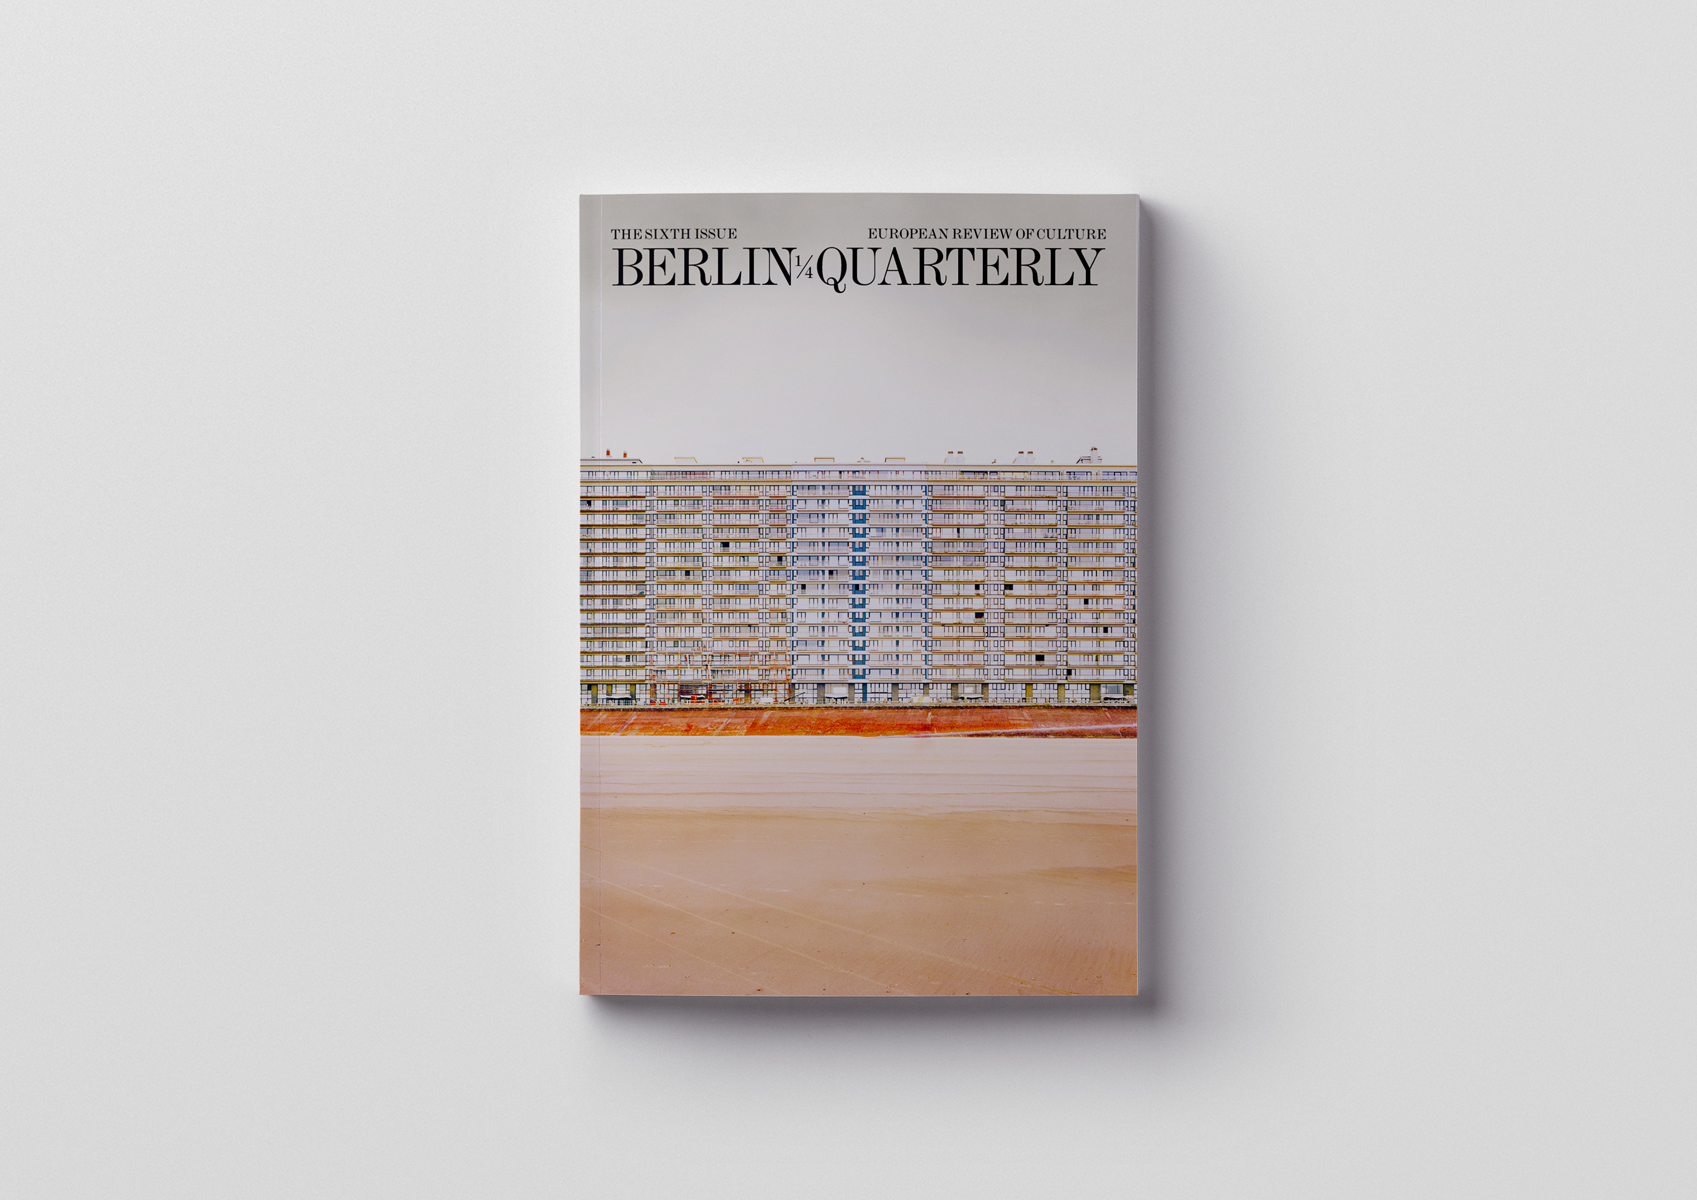 nicoletta-dalfino-berlin-quarterly-6-cover